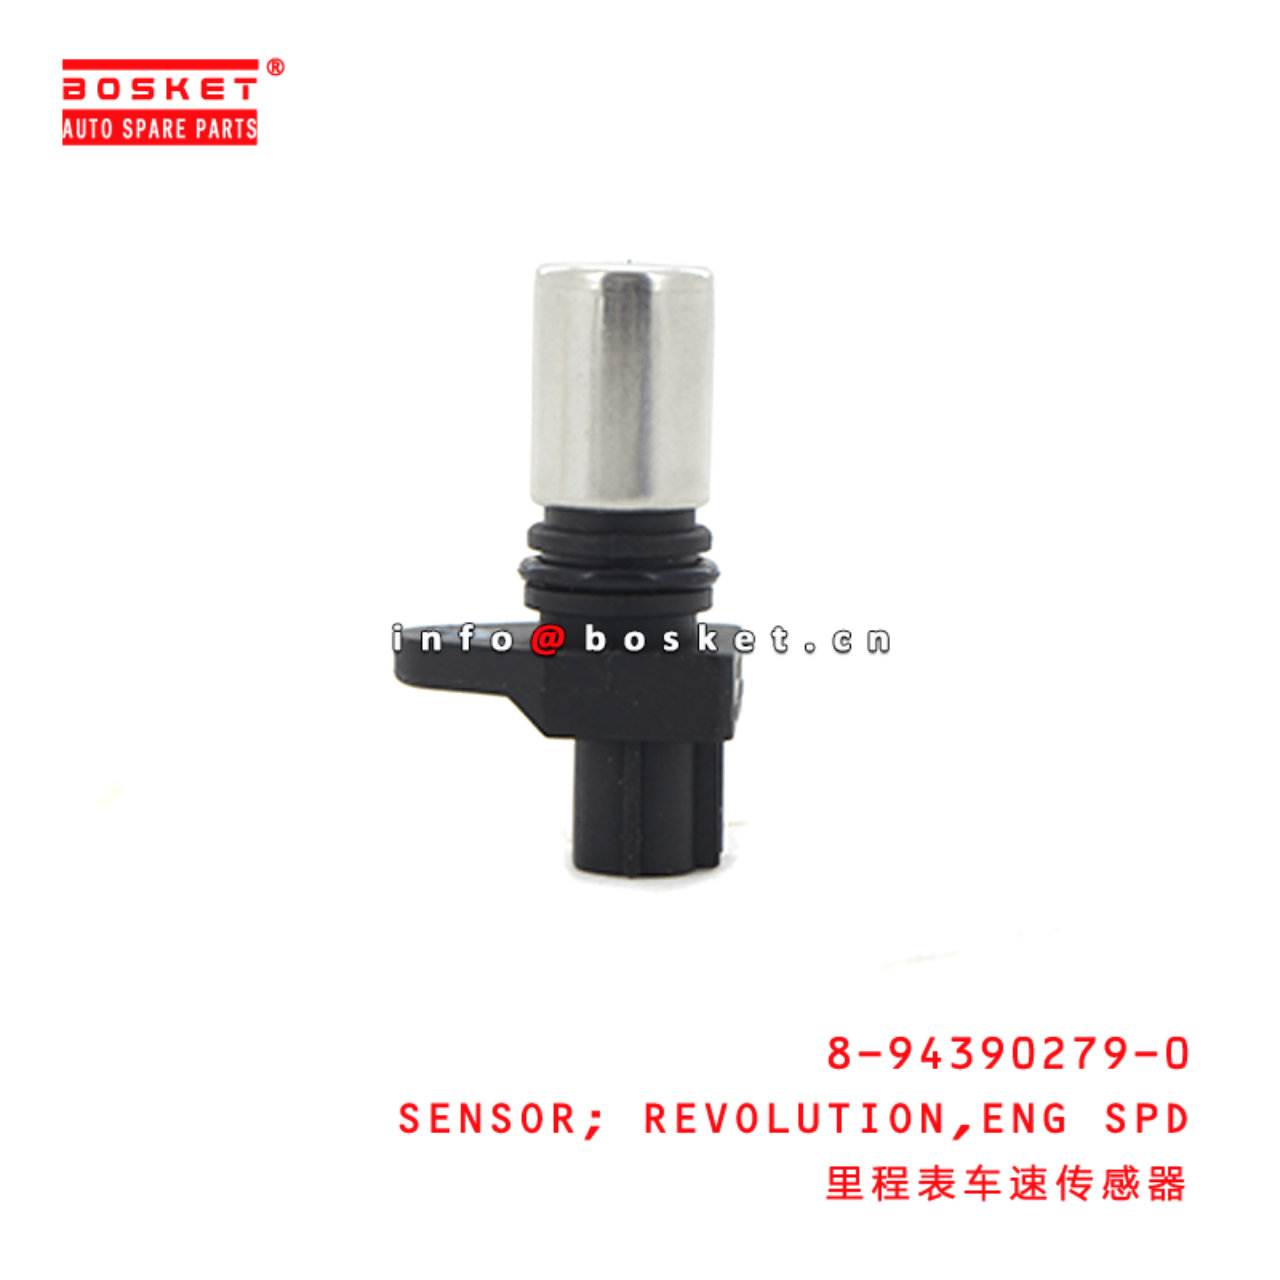 8-94390279-0 Engine Speed Revolution Sensor 8943902790 Suitable for ISUZU FVR VC46 6HK1 6UZ1